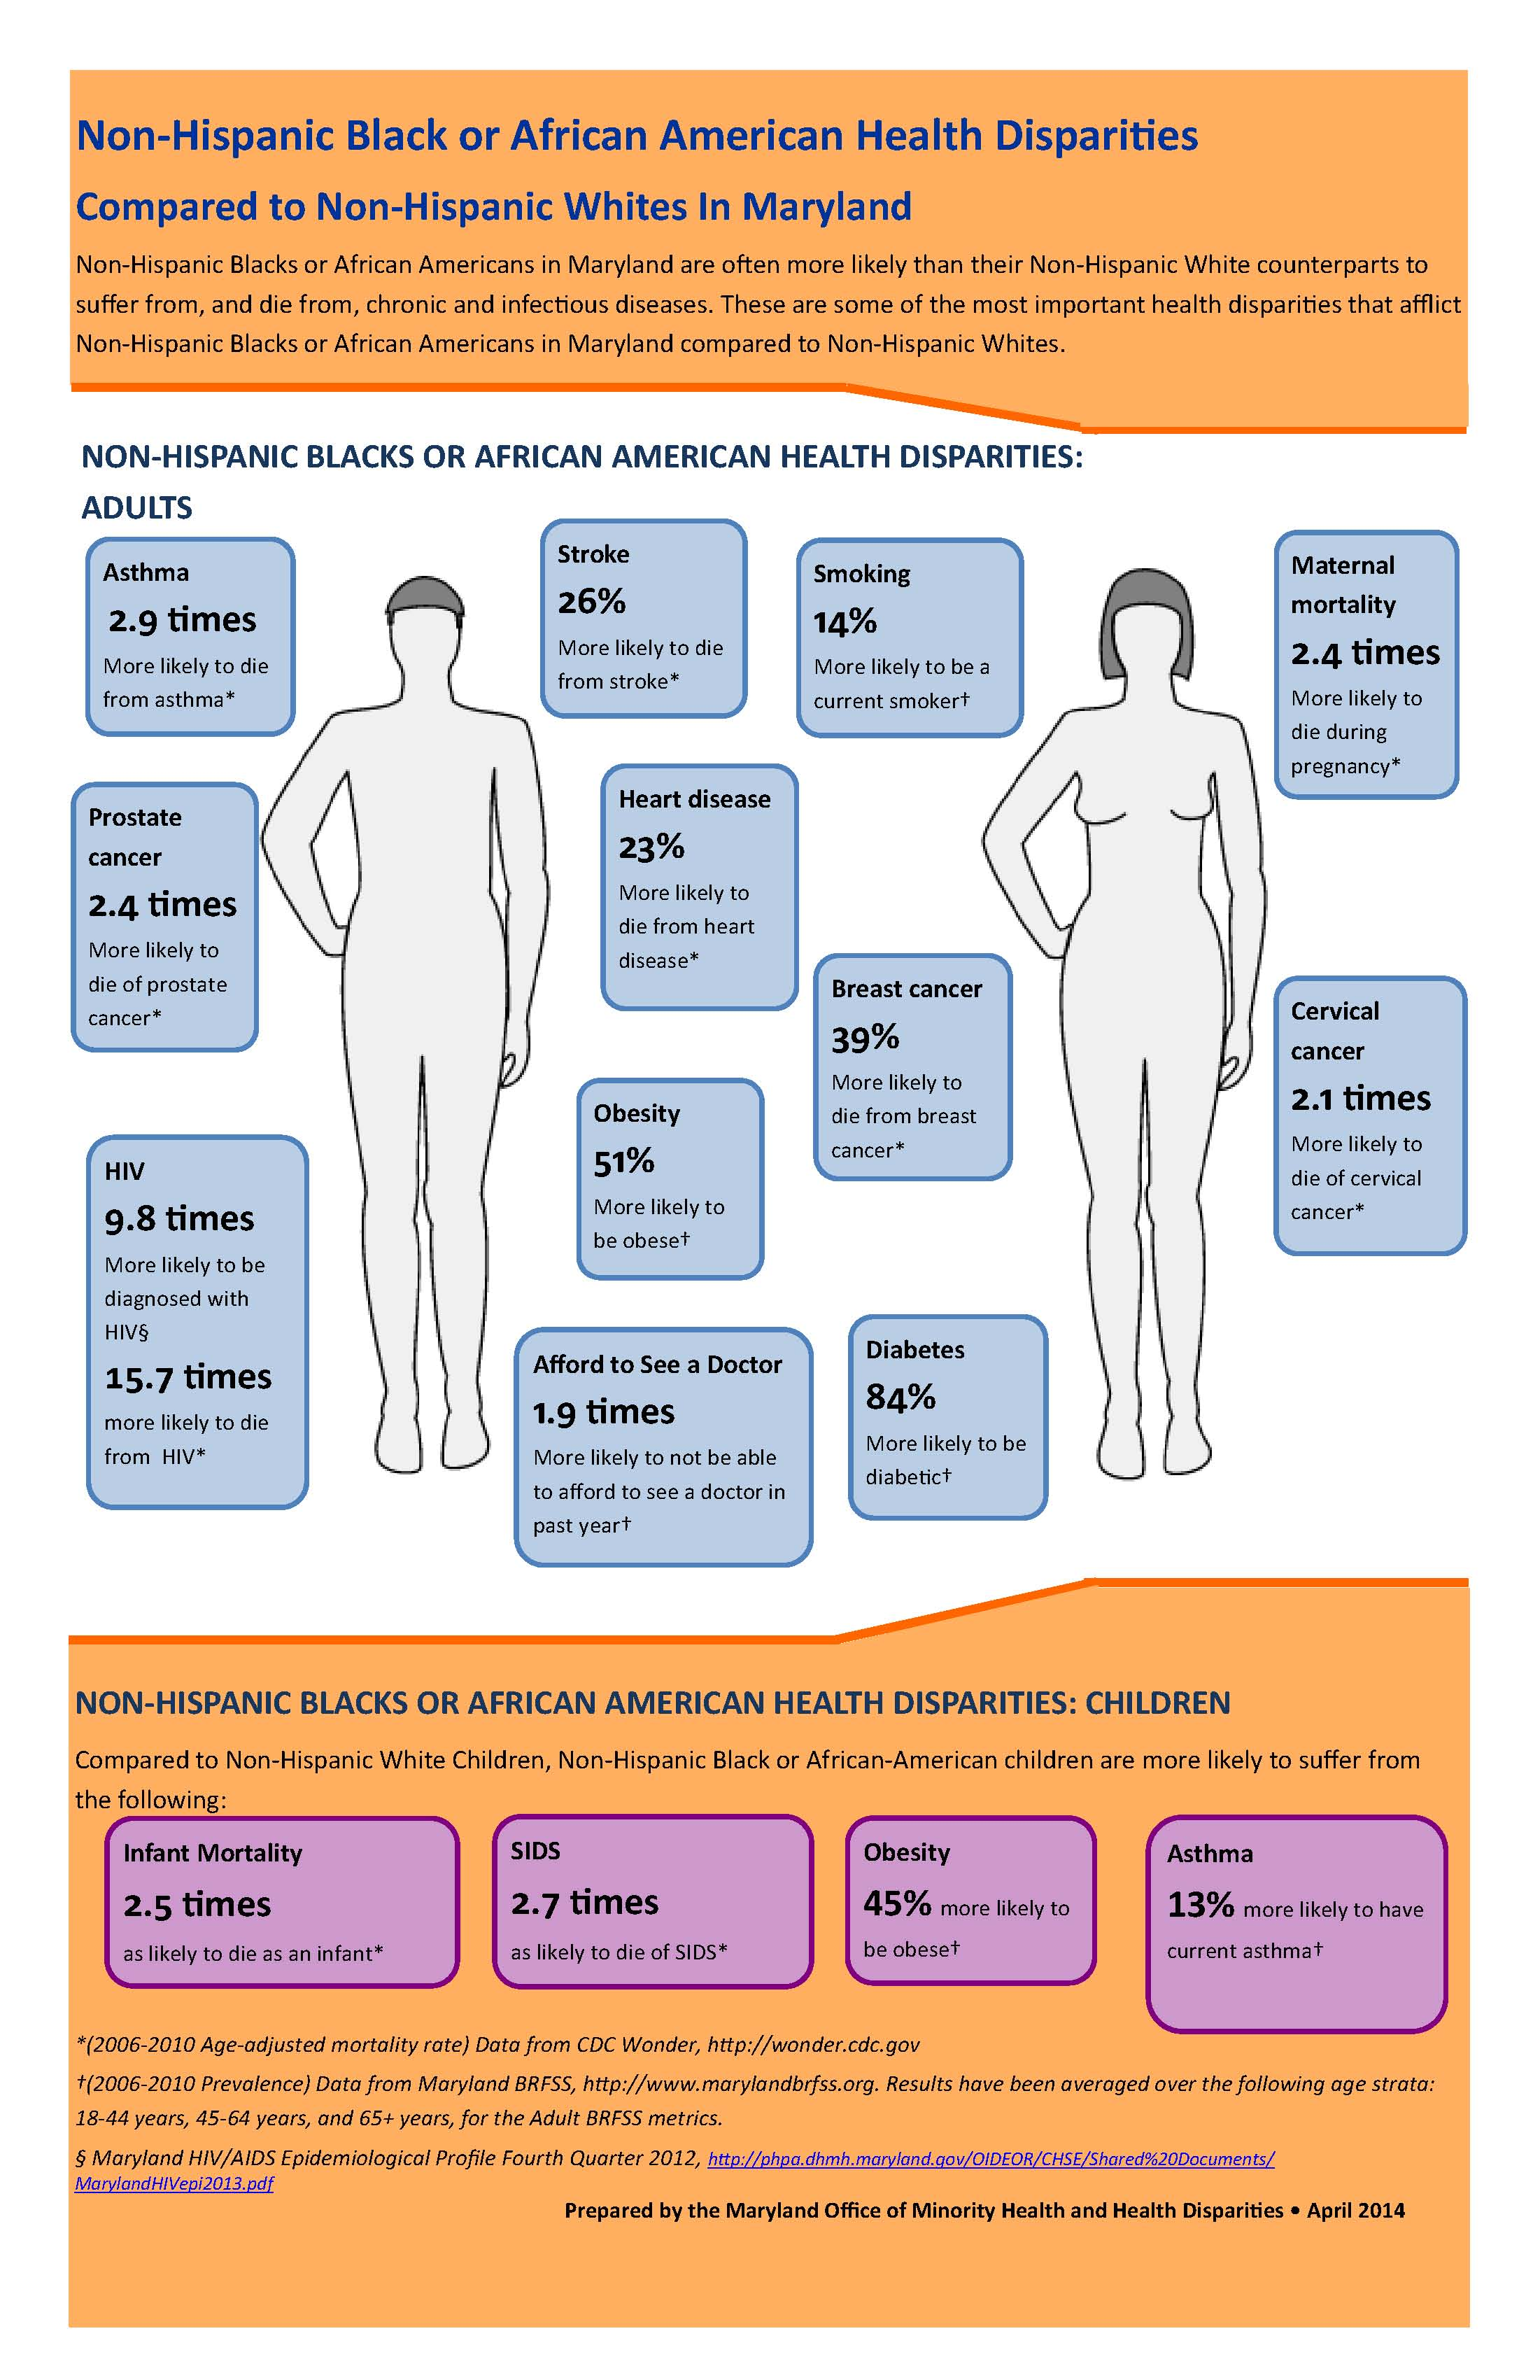 African American Health Disparities Infographic 7.8.14.jpg